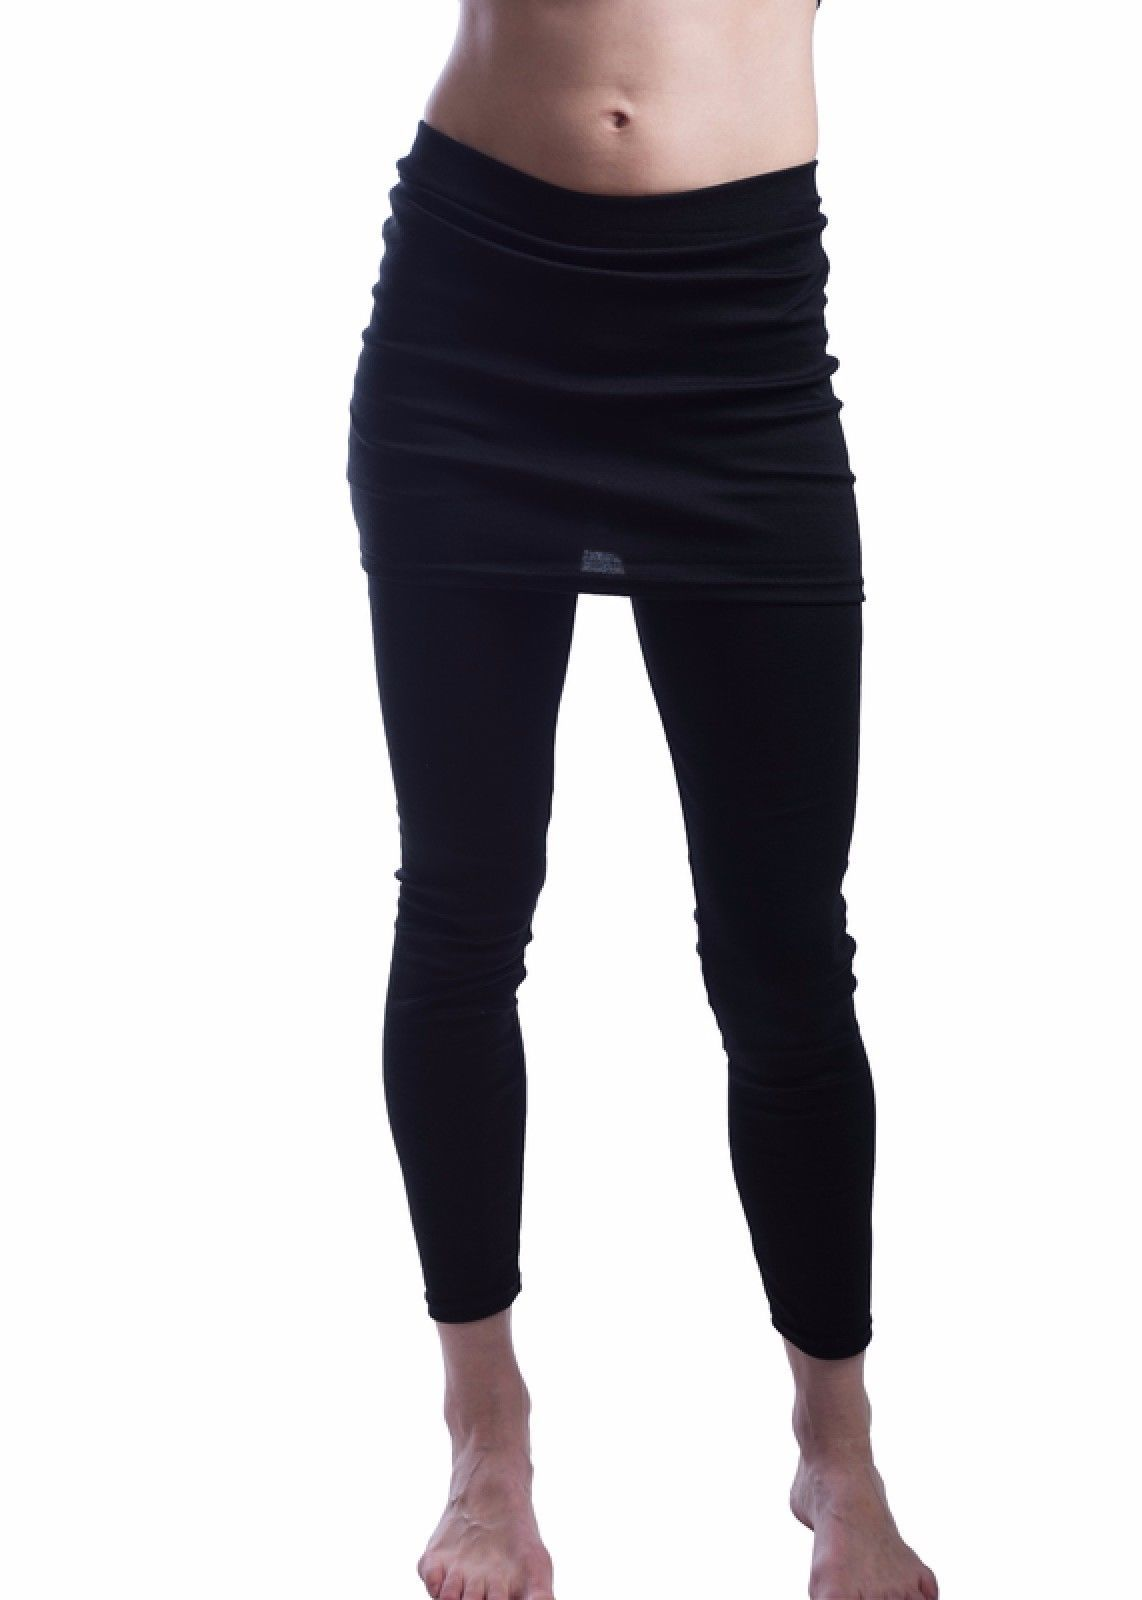 "Wear Freedom Black Ankle Length Leggings w/Skirt 1 Size Fits All up to 32"" Waist"